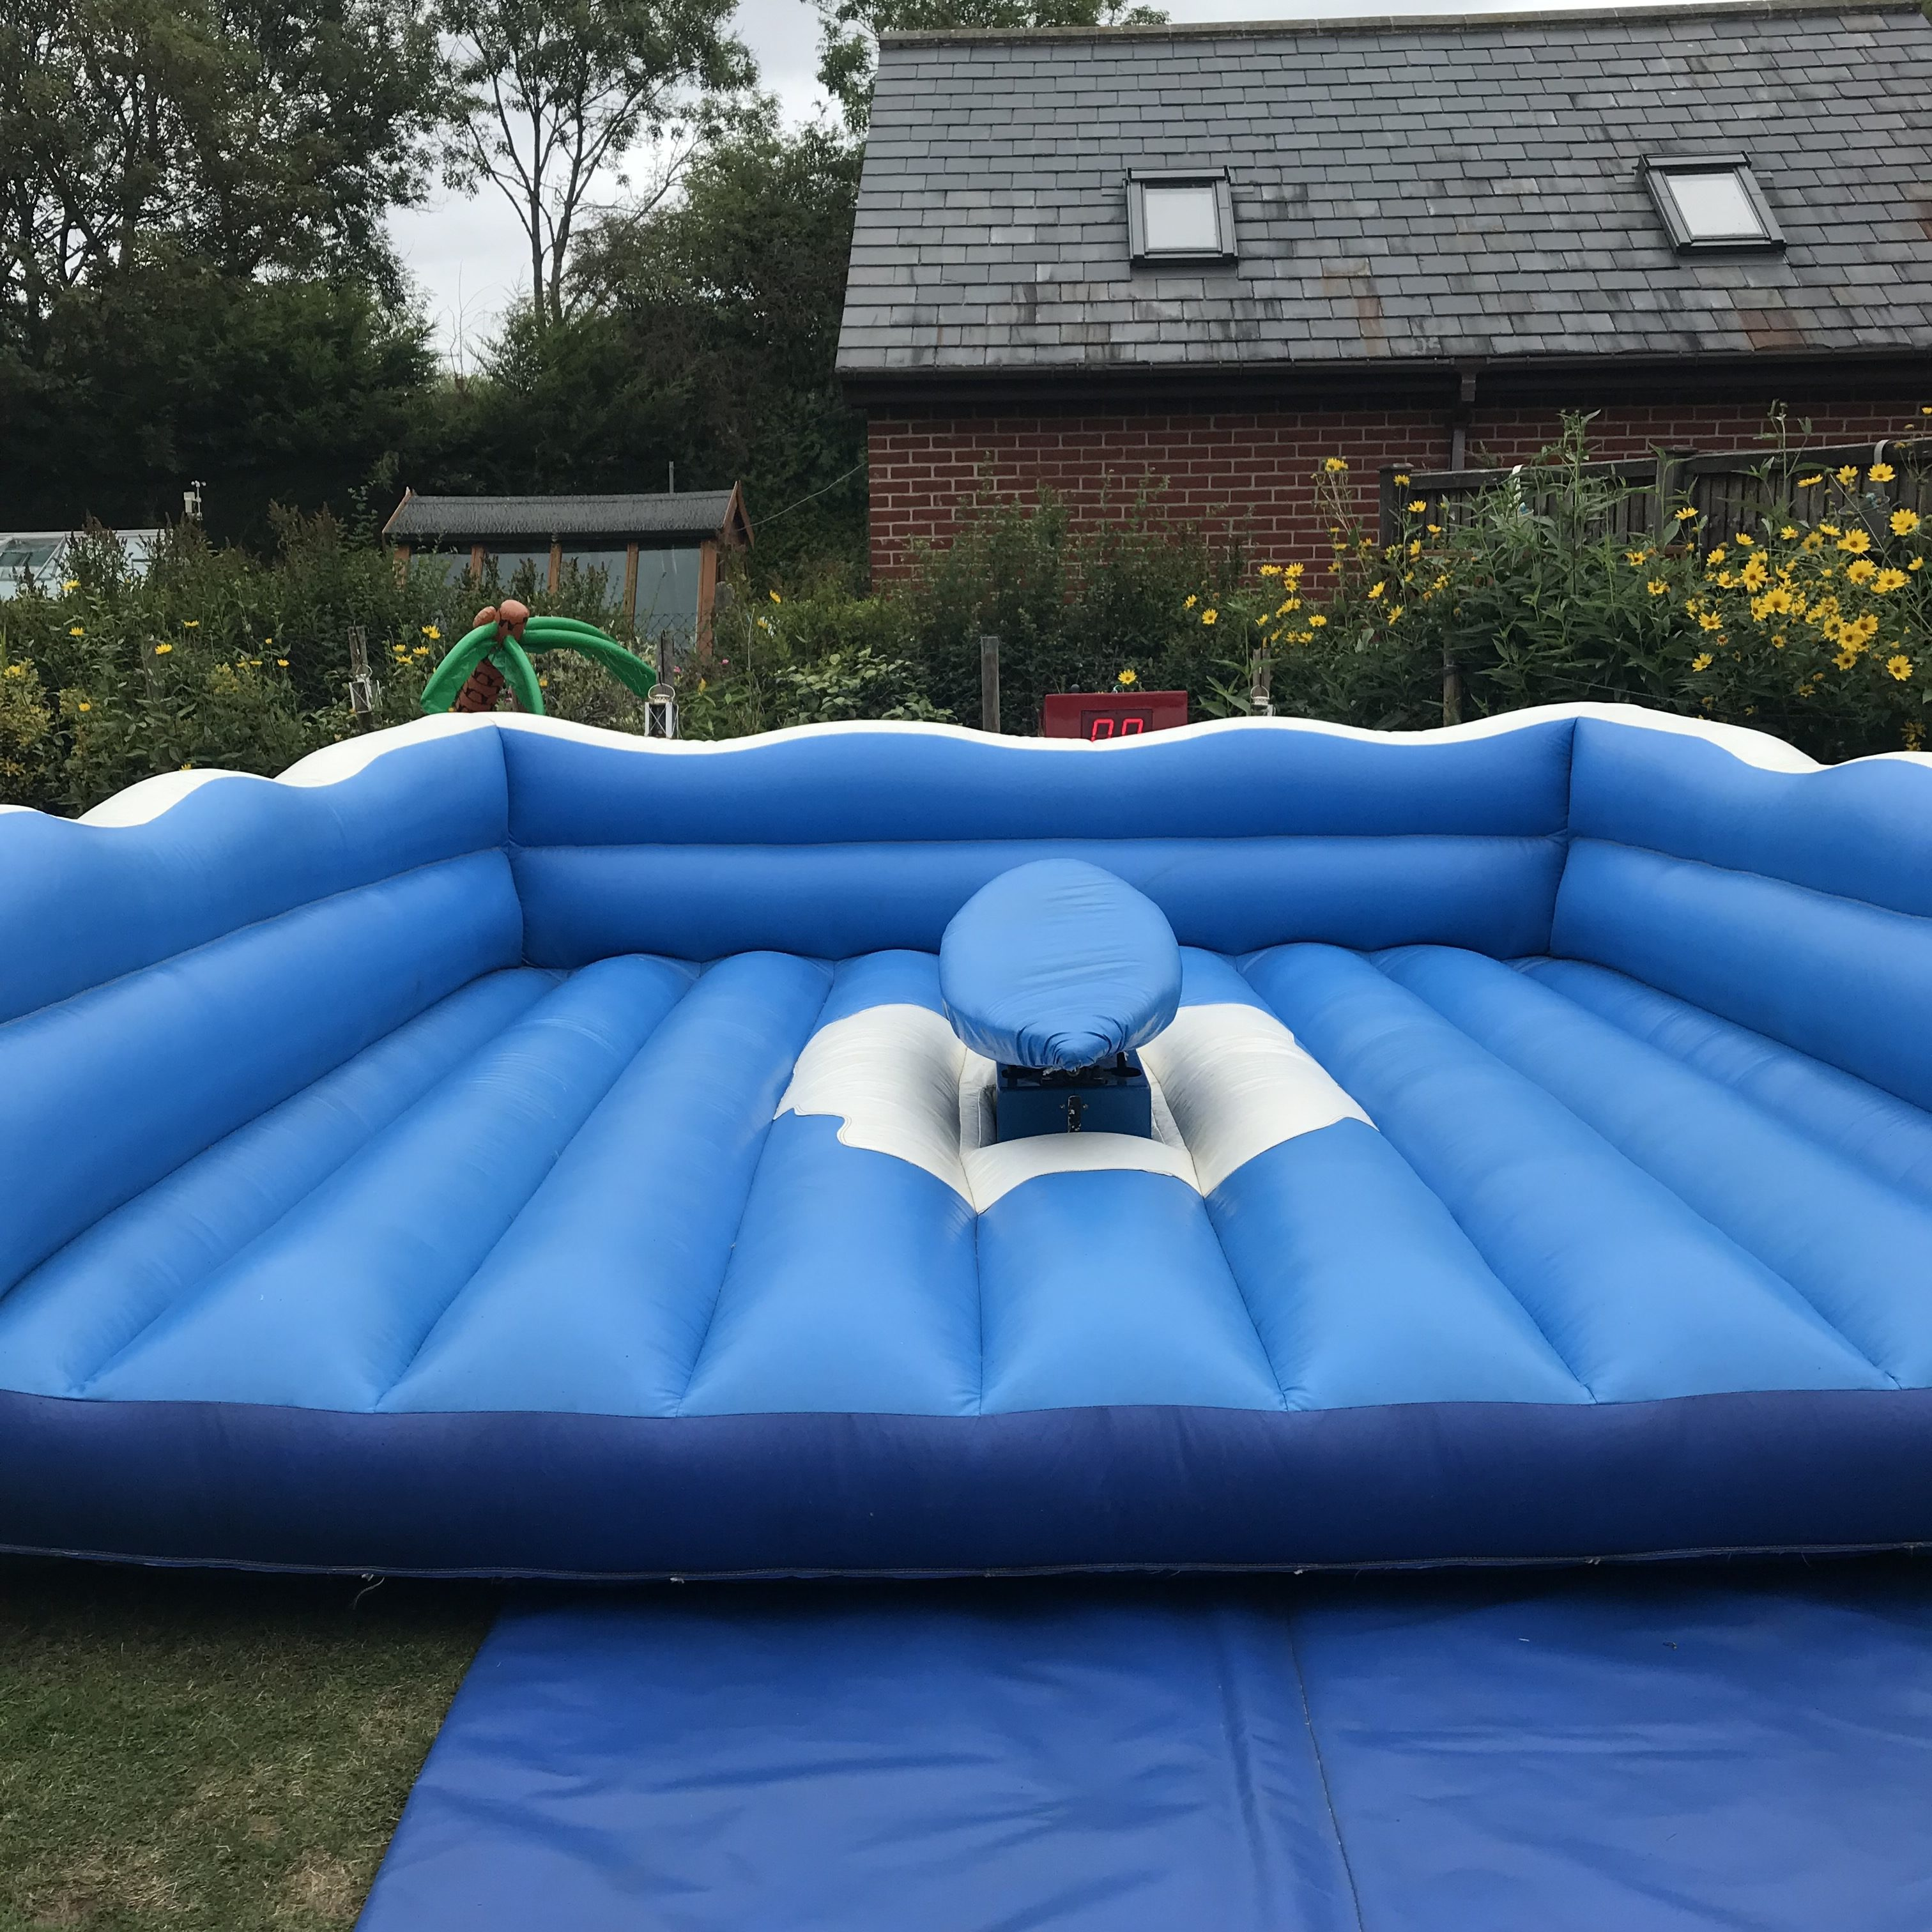 Rodeo Bull hire west sussex